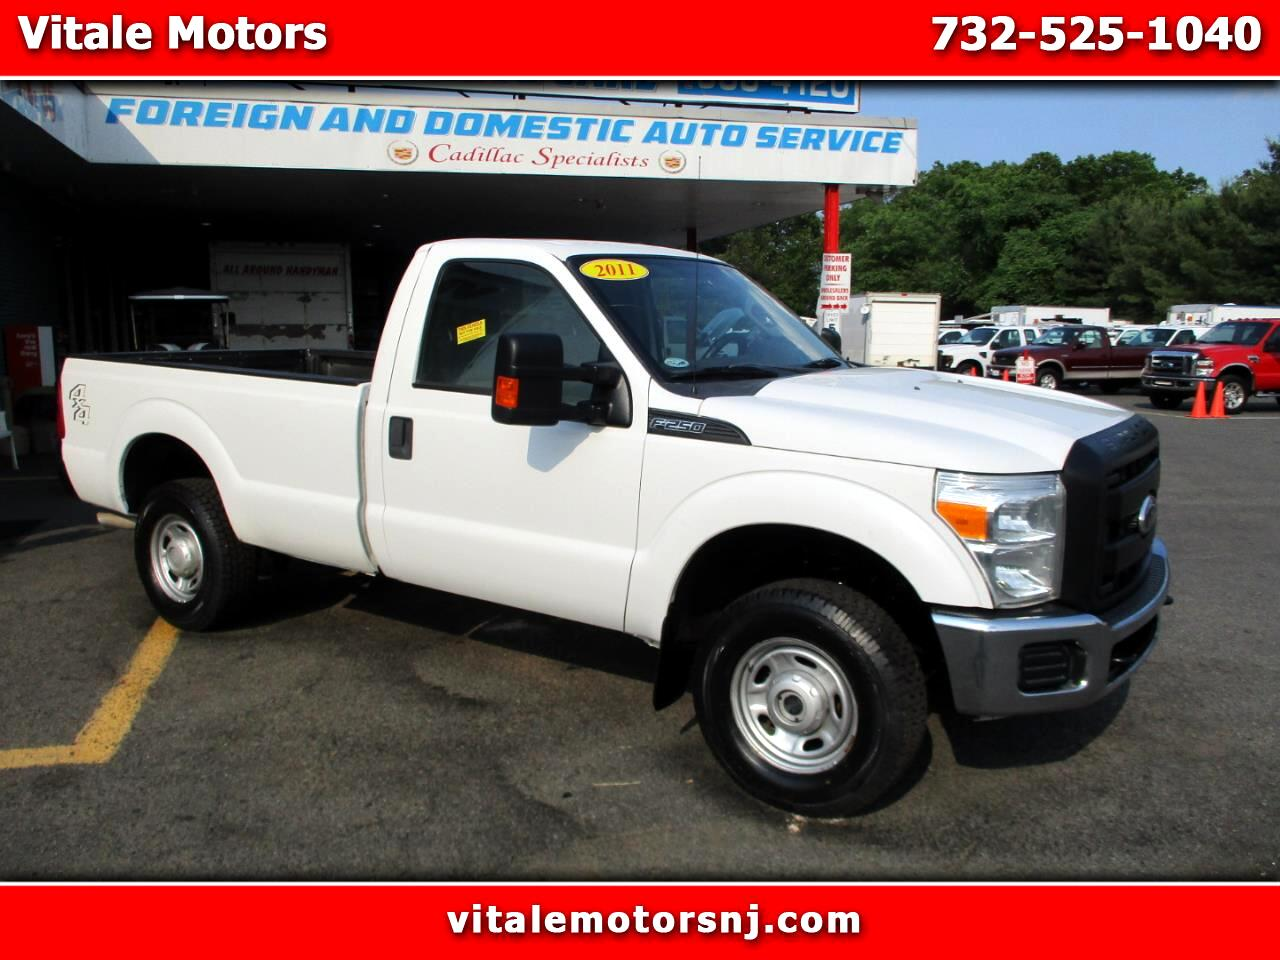 2011 Ford F-250 SD REG. CAB LONG BED 4X4